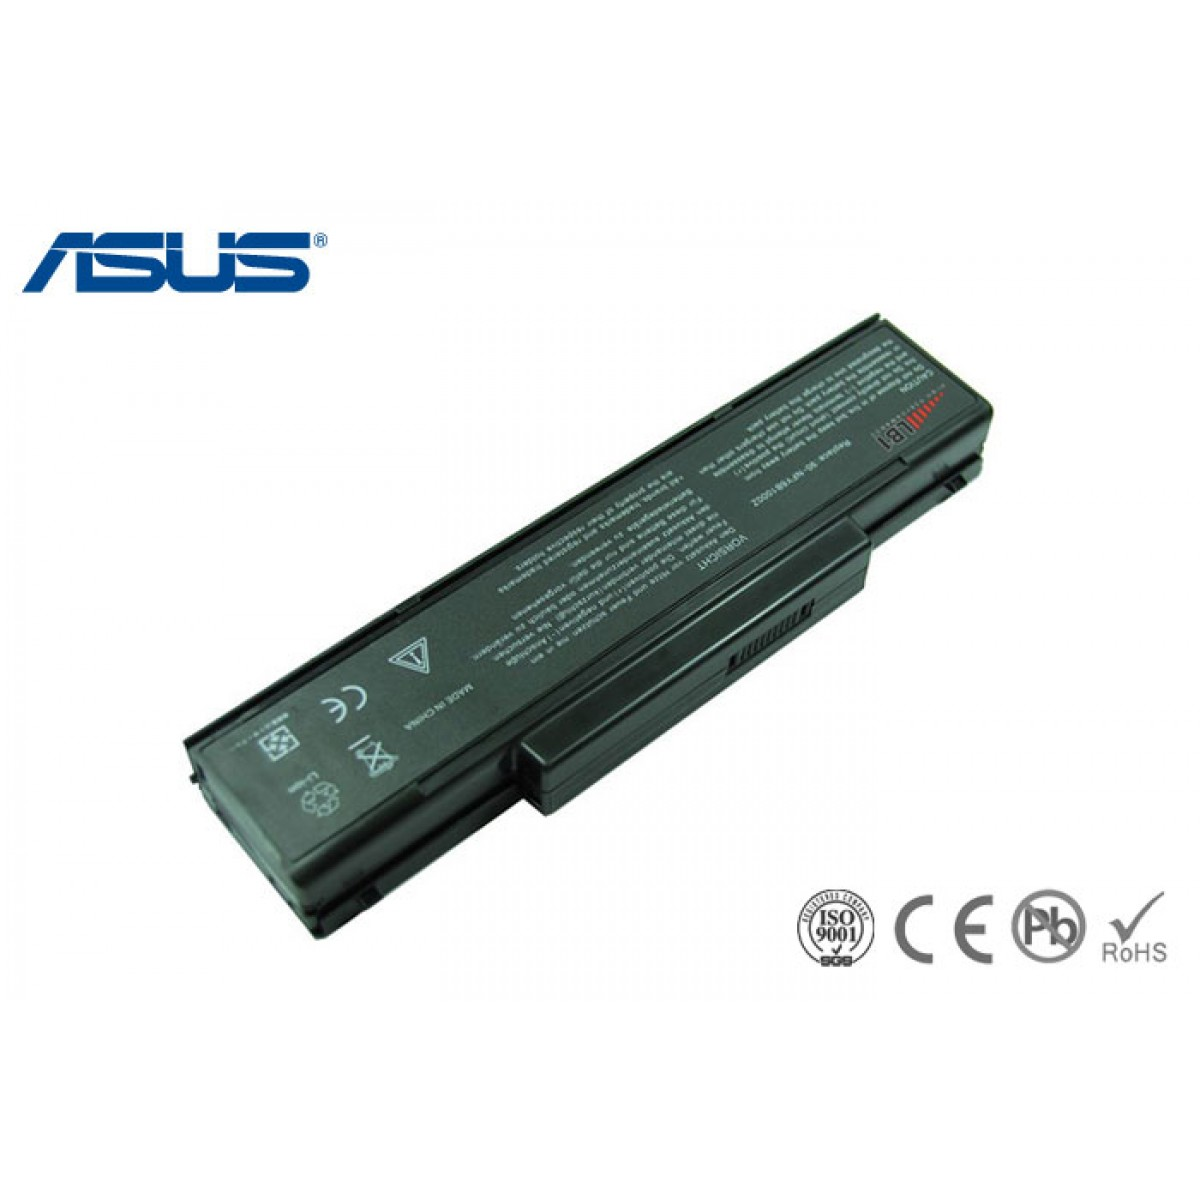 BATTERY FOR NOTEBOOK ASUS M51A COPY ,Laptop Battery